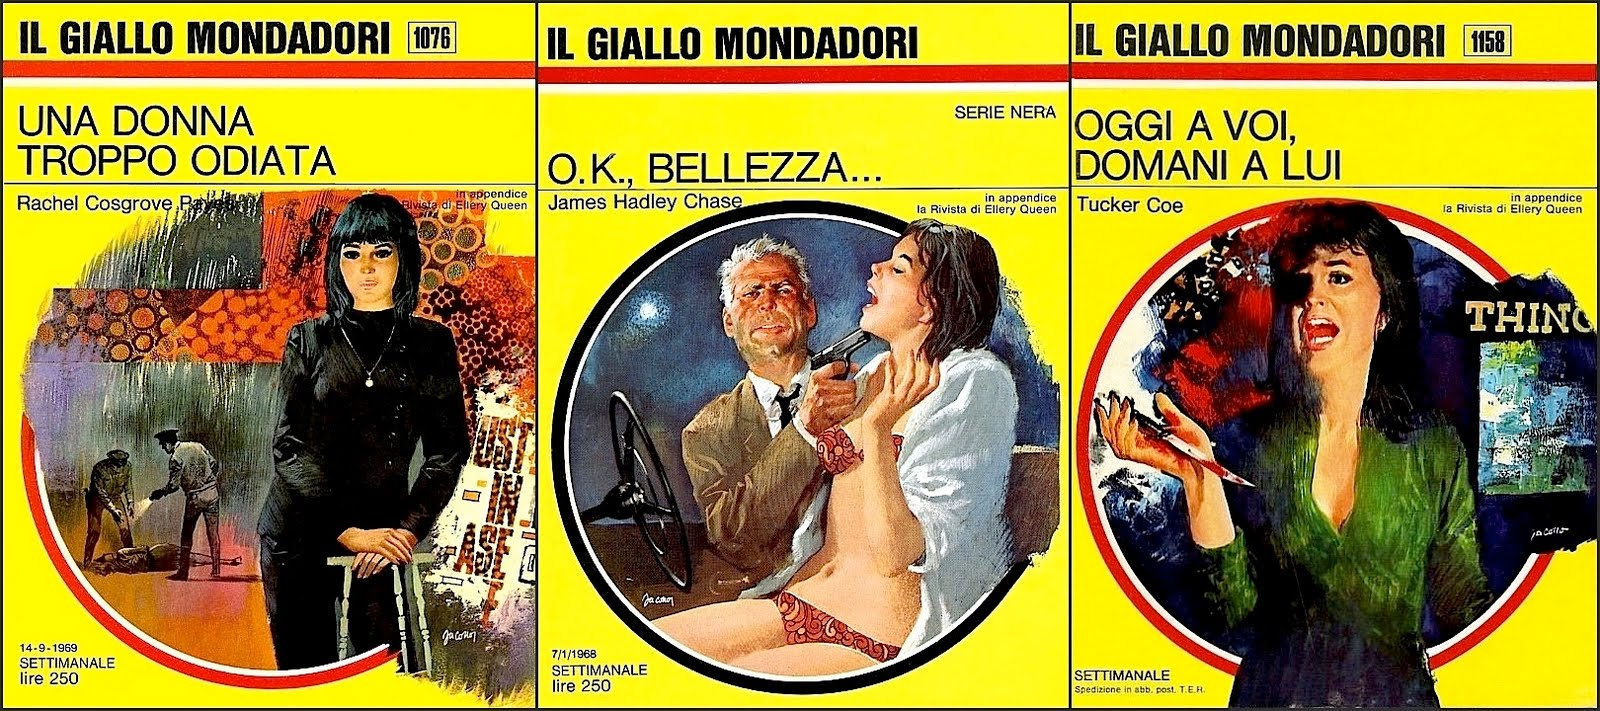 https://periscopejd.files.wordpress.com/2012/08/3giallo_covers.jpg